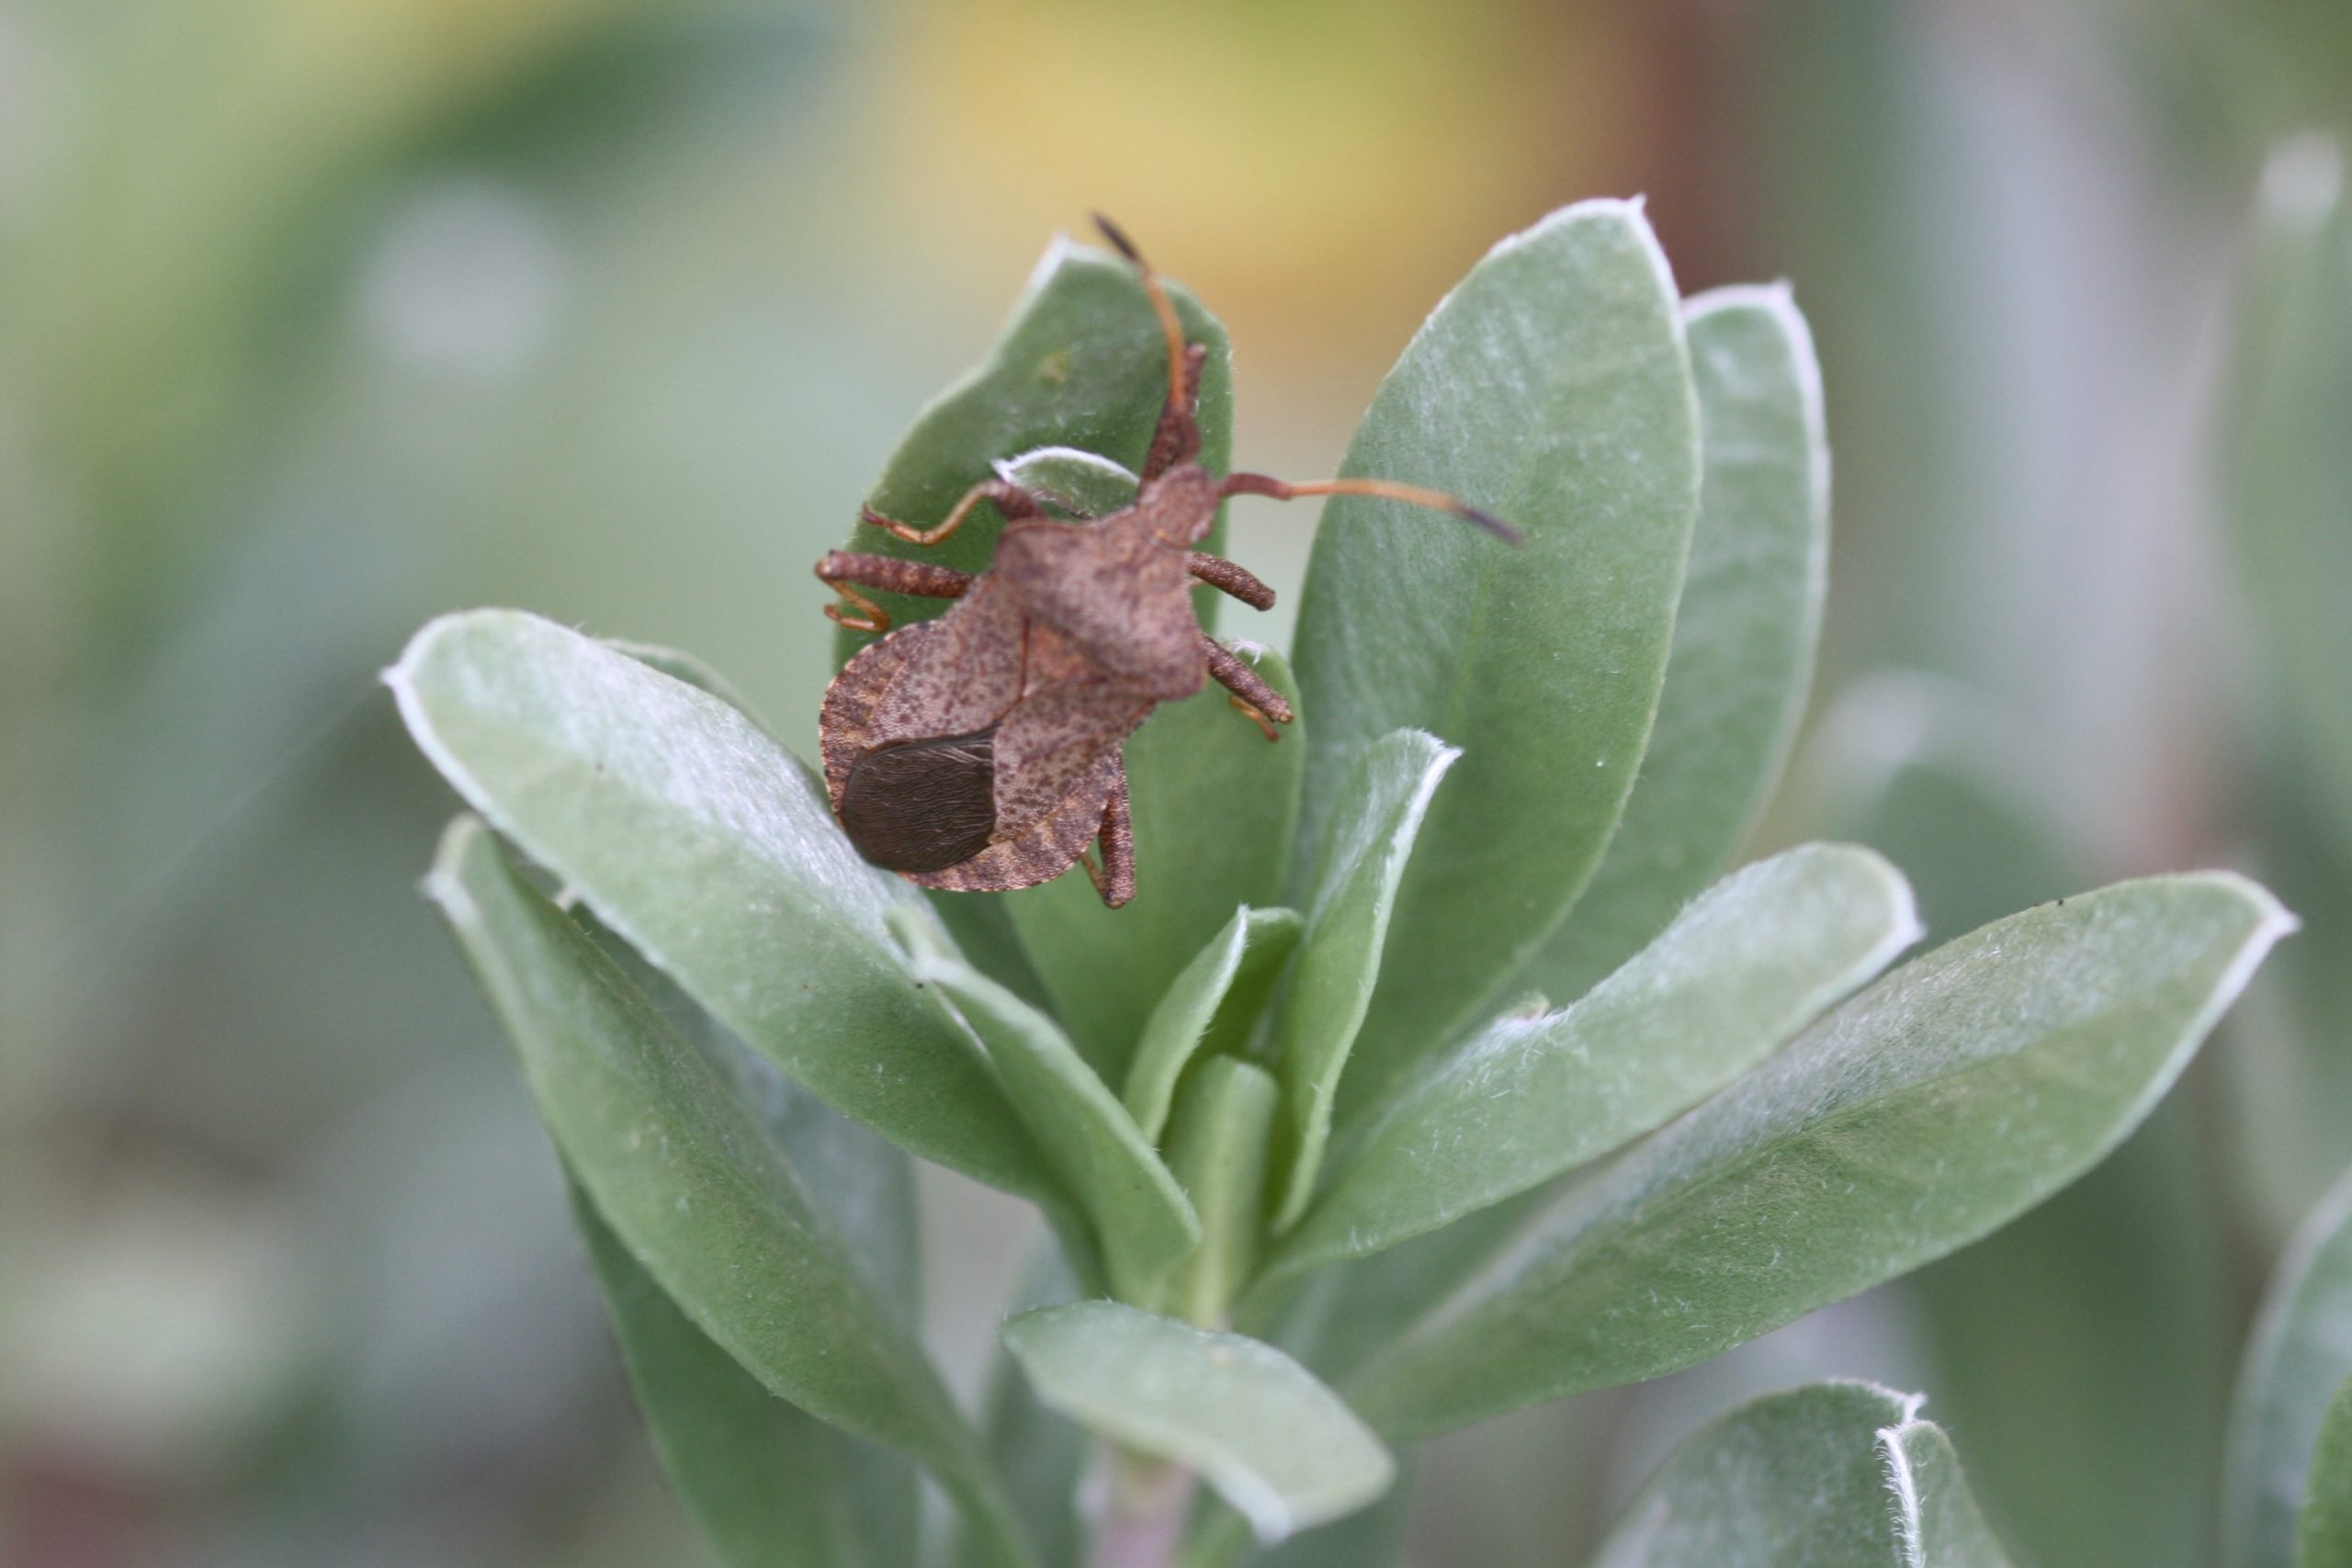 Squash bug or Dock bug, Coreus marginatus